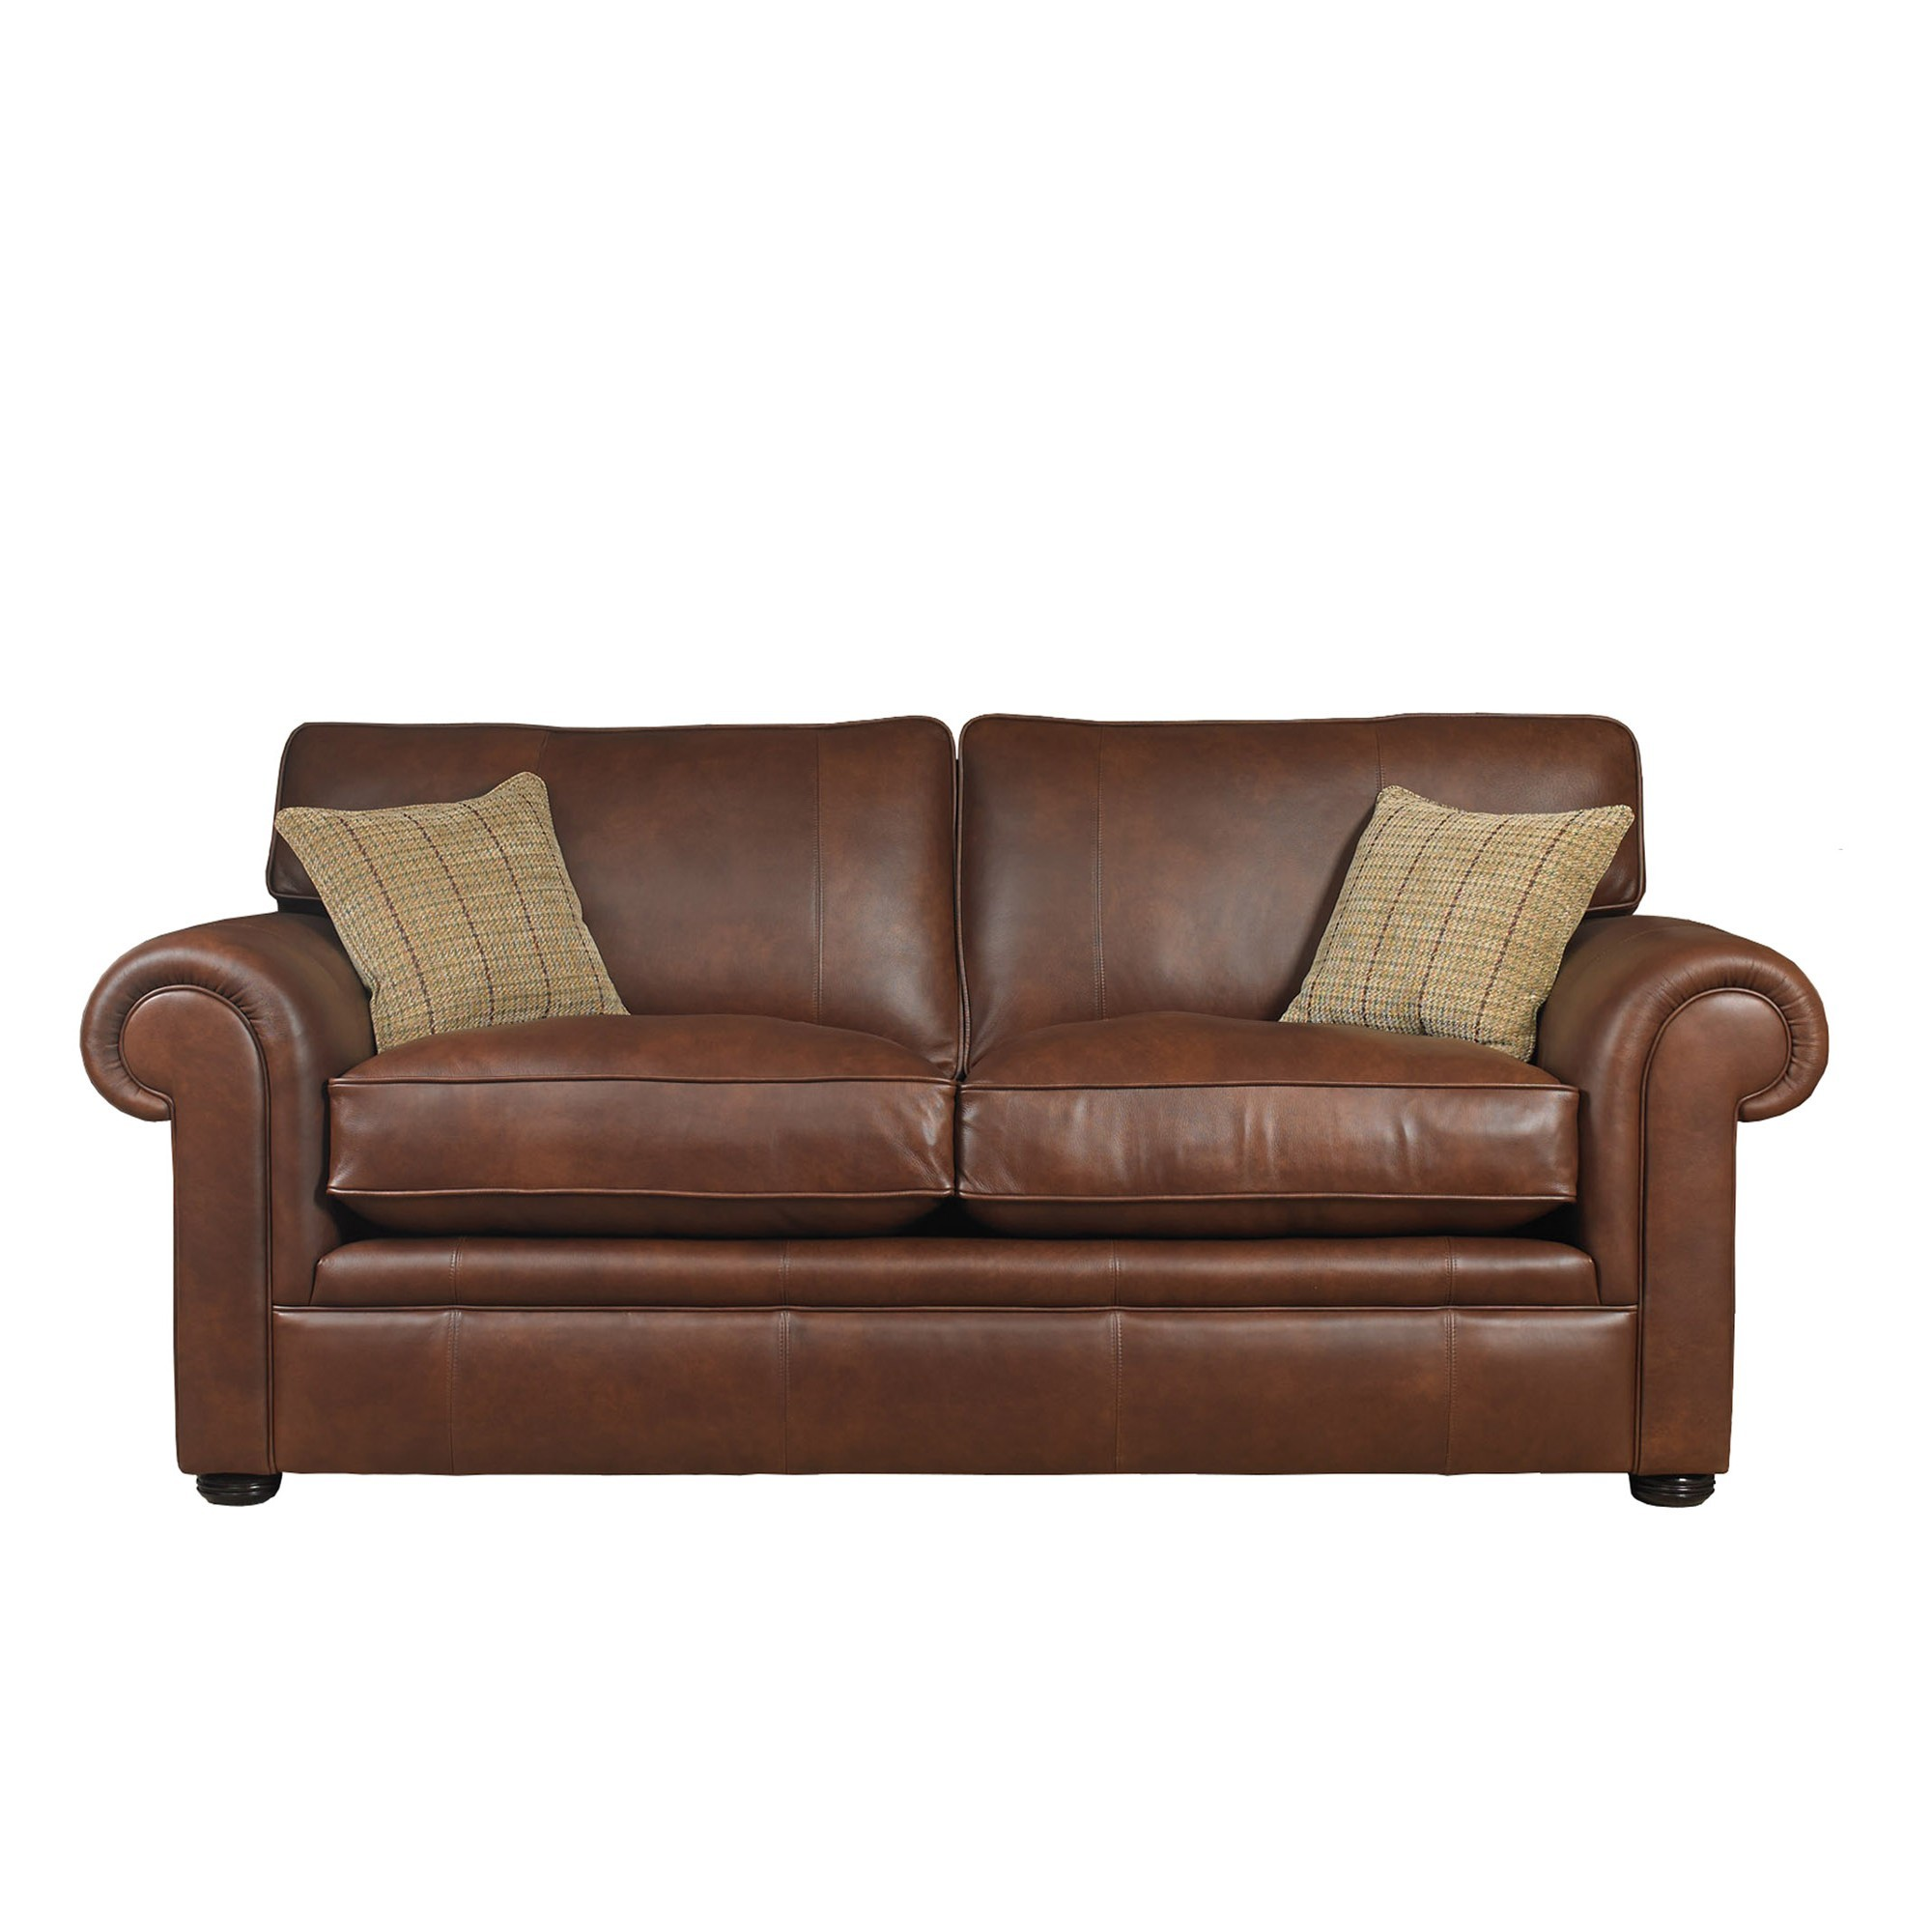 Wade Upholstery Barnaby Formal Back Sofa Leather Sofas